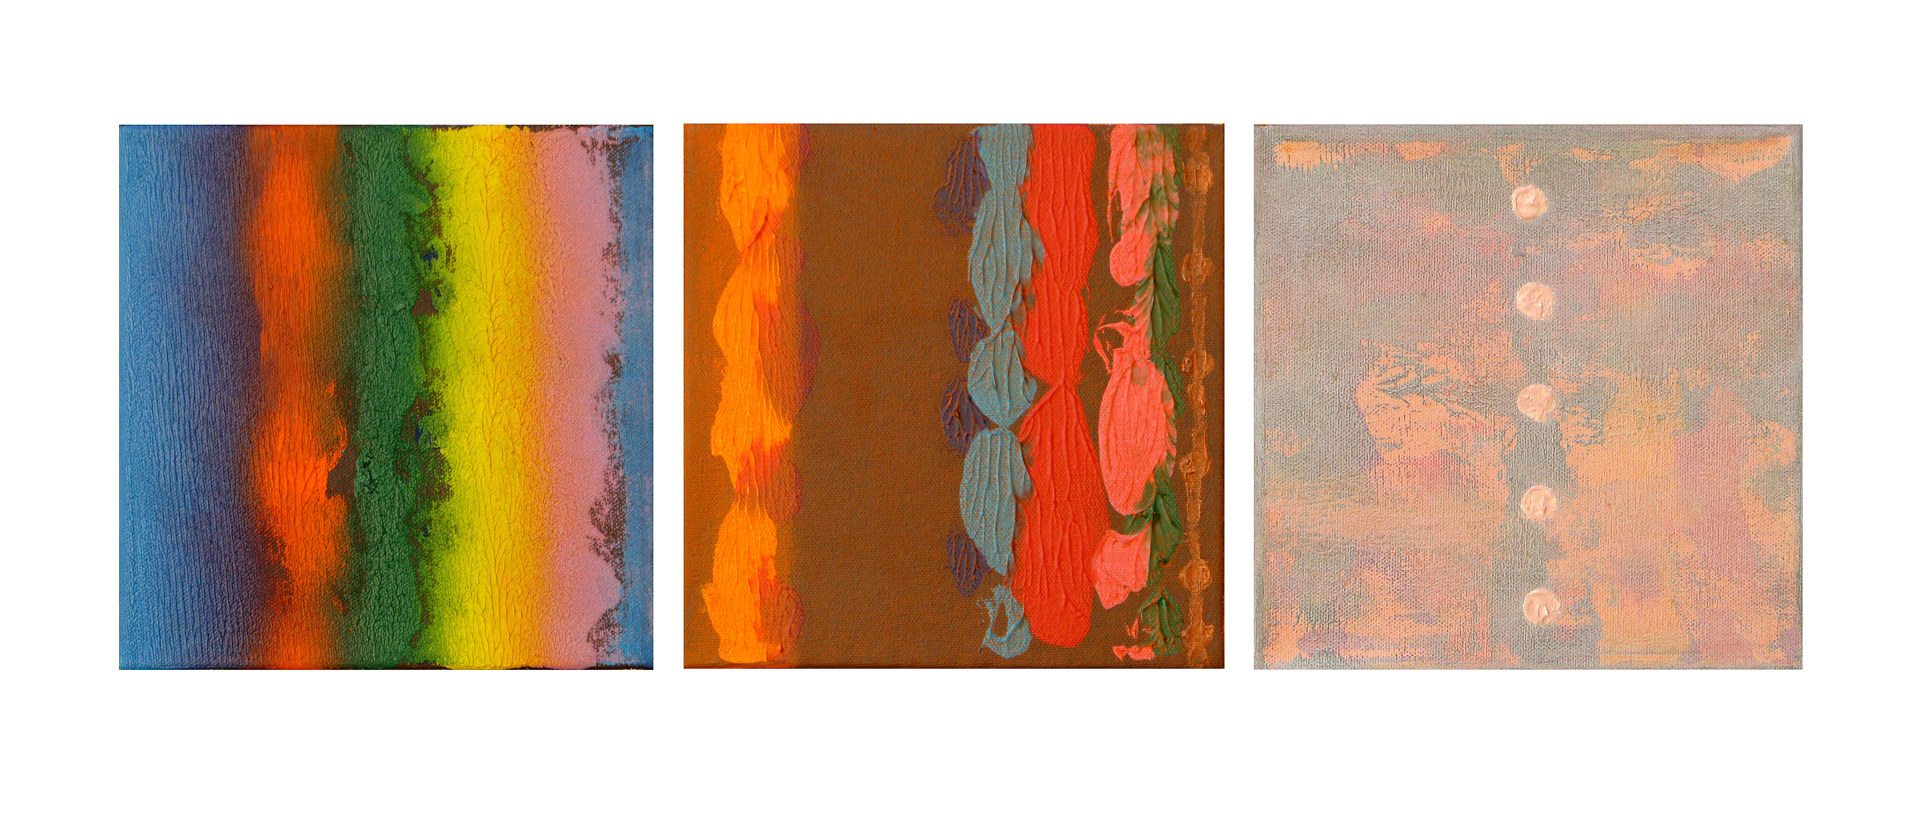 Acrylic painting Decorative Trio II, 8x8 inches each by Hooshang Khorasani